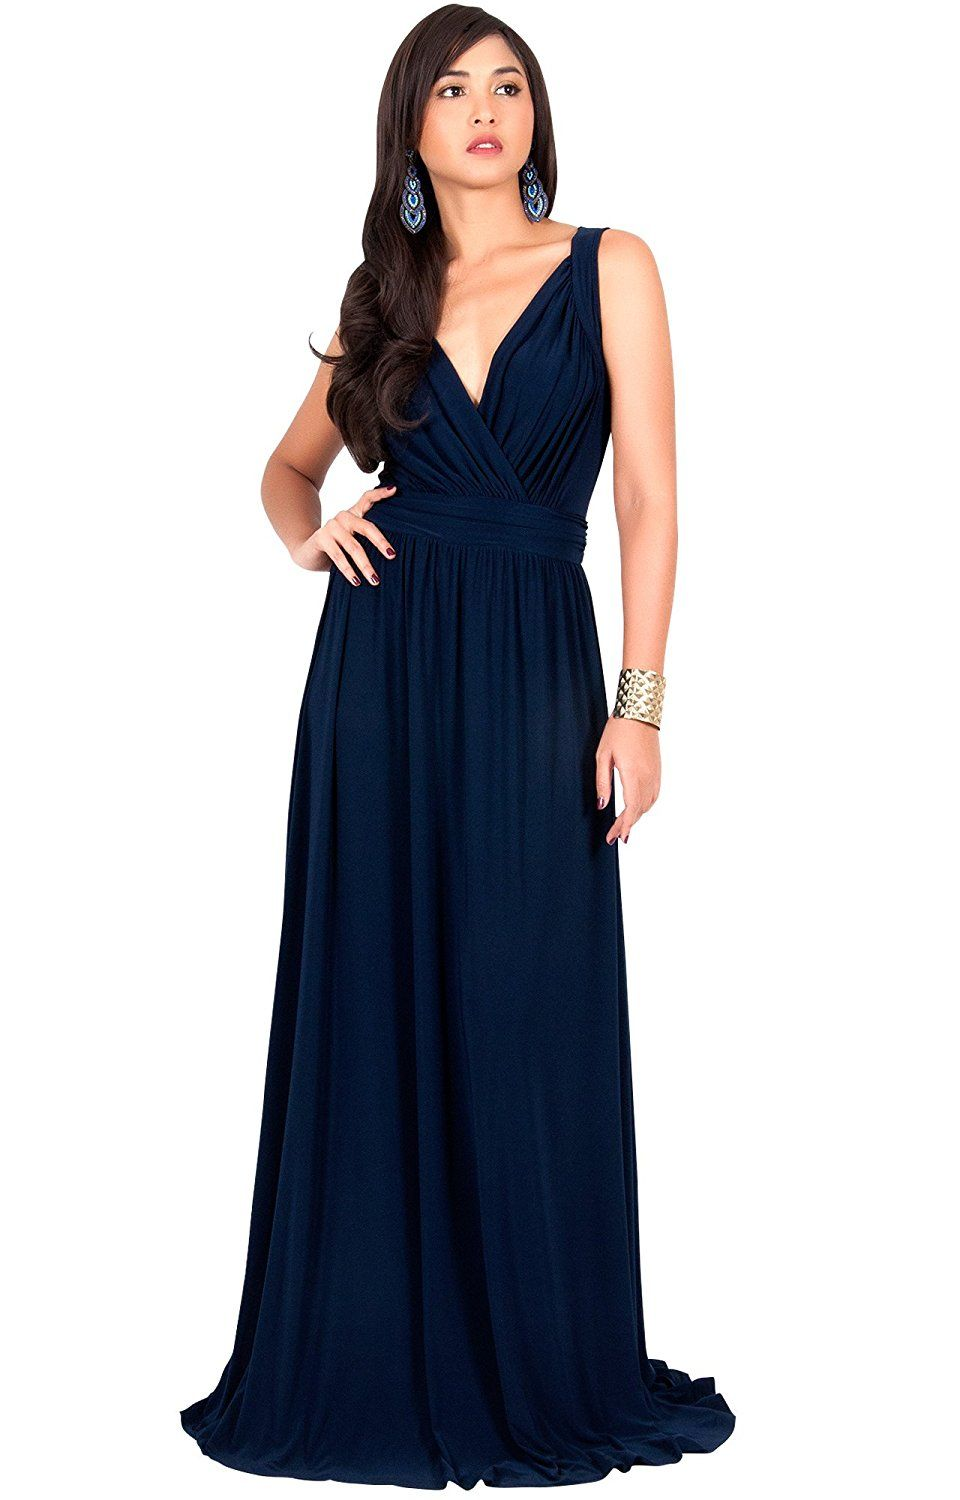 Koh koh womens long sleeveless flowy bridesmaid cocktail evening